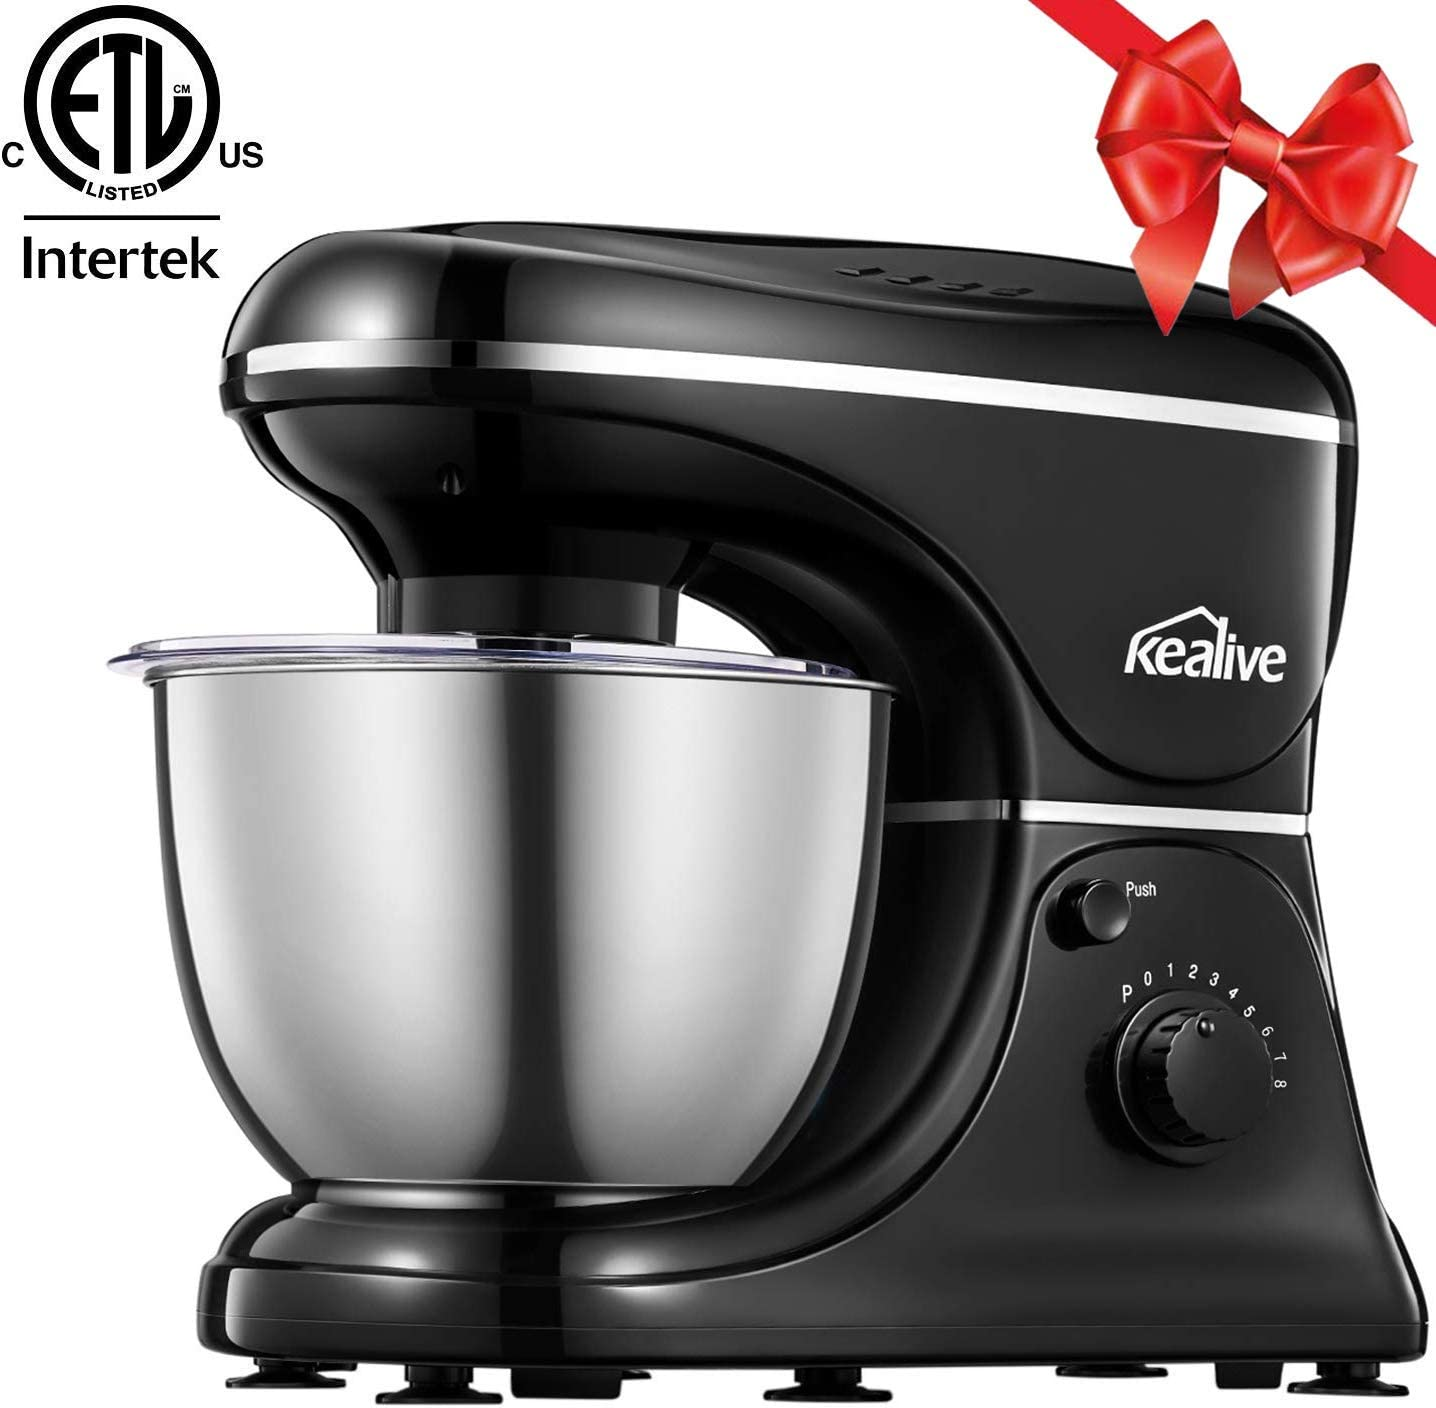 Kealive Stand mixer